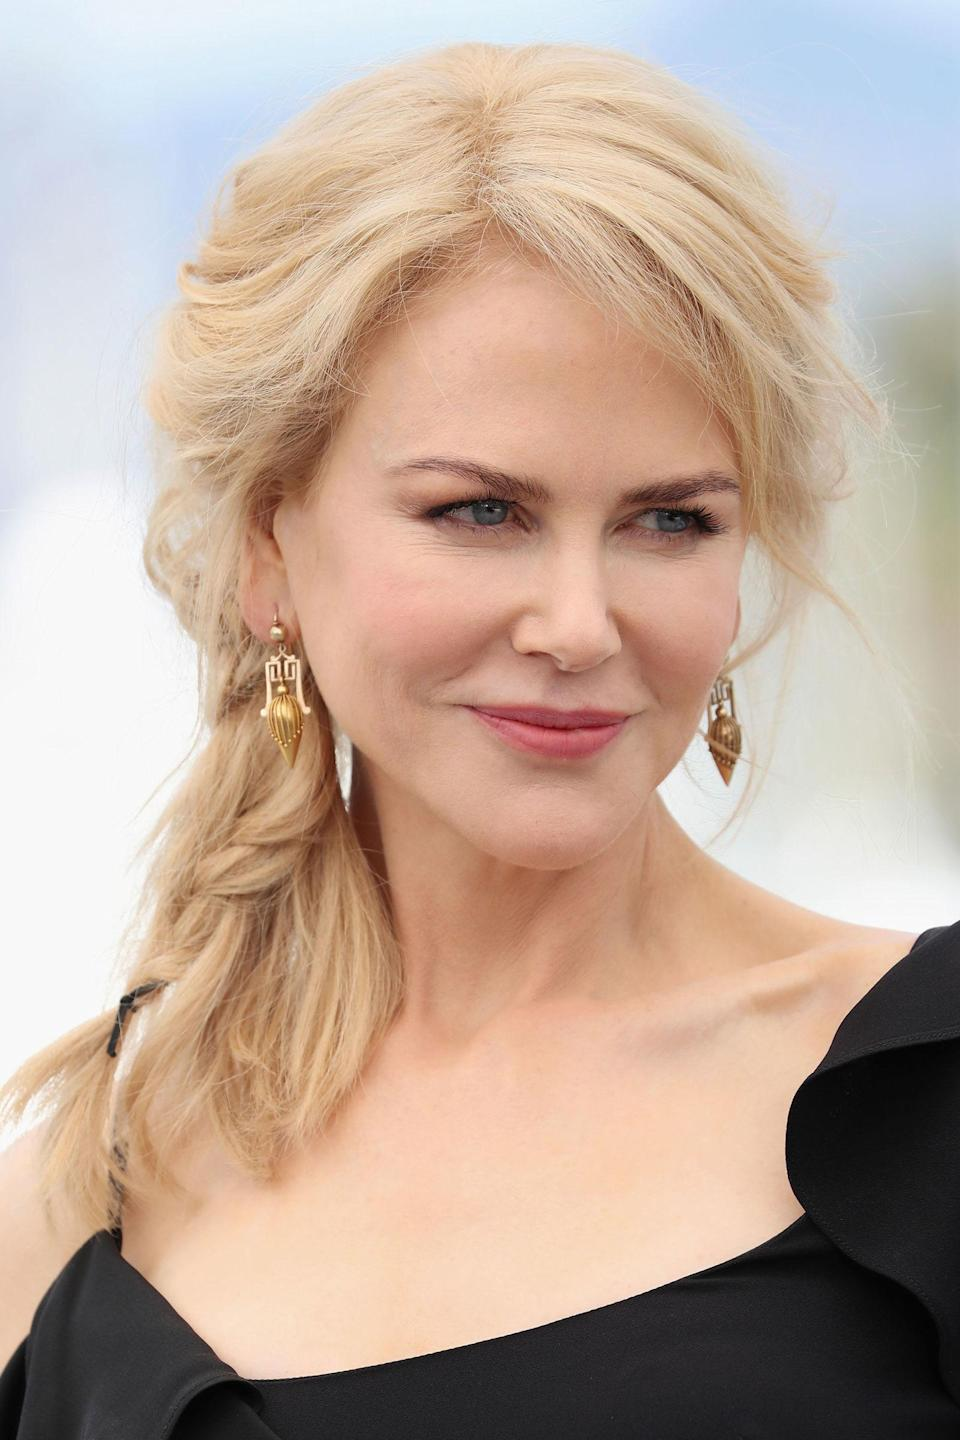 """<p>Kidman's undone side braid is yet another example of the <a rel=""""nofollow noopener"""" href=""""http://www.harpersbazaar.co.uk/beauty/beauty-shows-trends/news/g37977/cannes-beauty-trend-natural-hair/"""" target=""""_blank"""" data-ylk=""""slk:nonchalant hair trend"""" class=""""link rapid-noclick-resp"""">nonchalant hair trend</a> taking over the Cannes red carpet.</p>"""